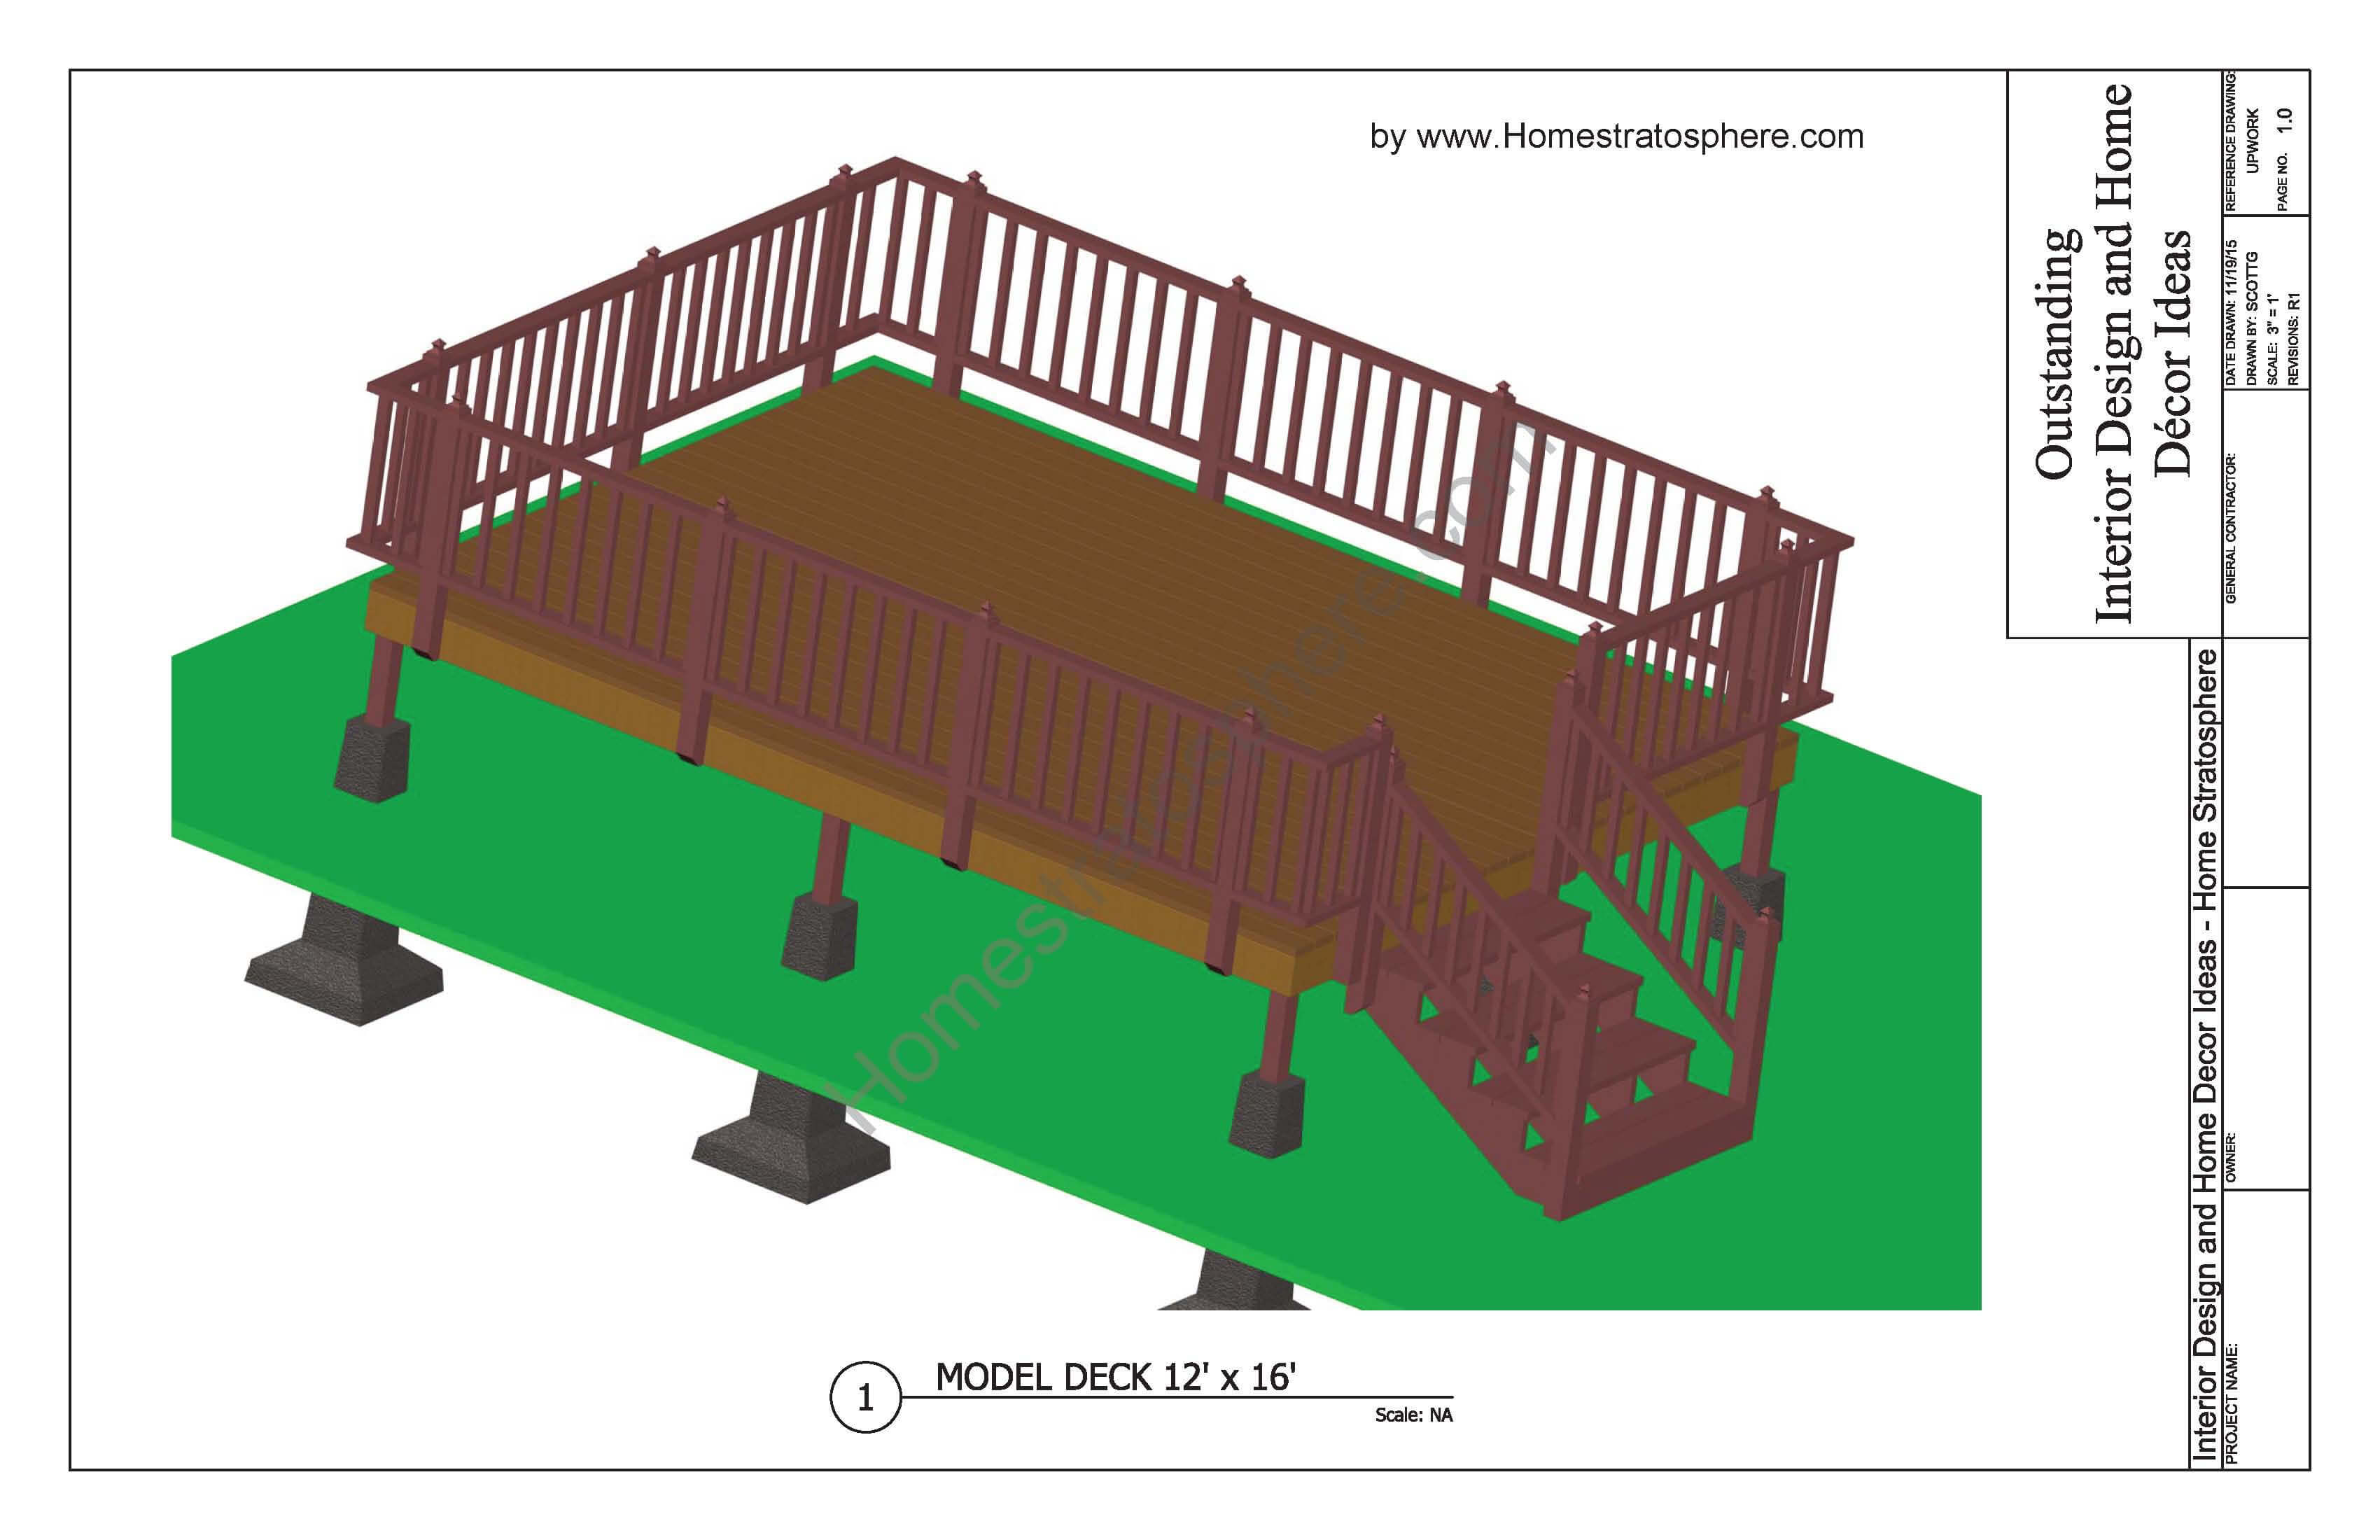 12x16 Deck with Stairs Plan